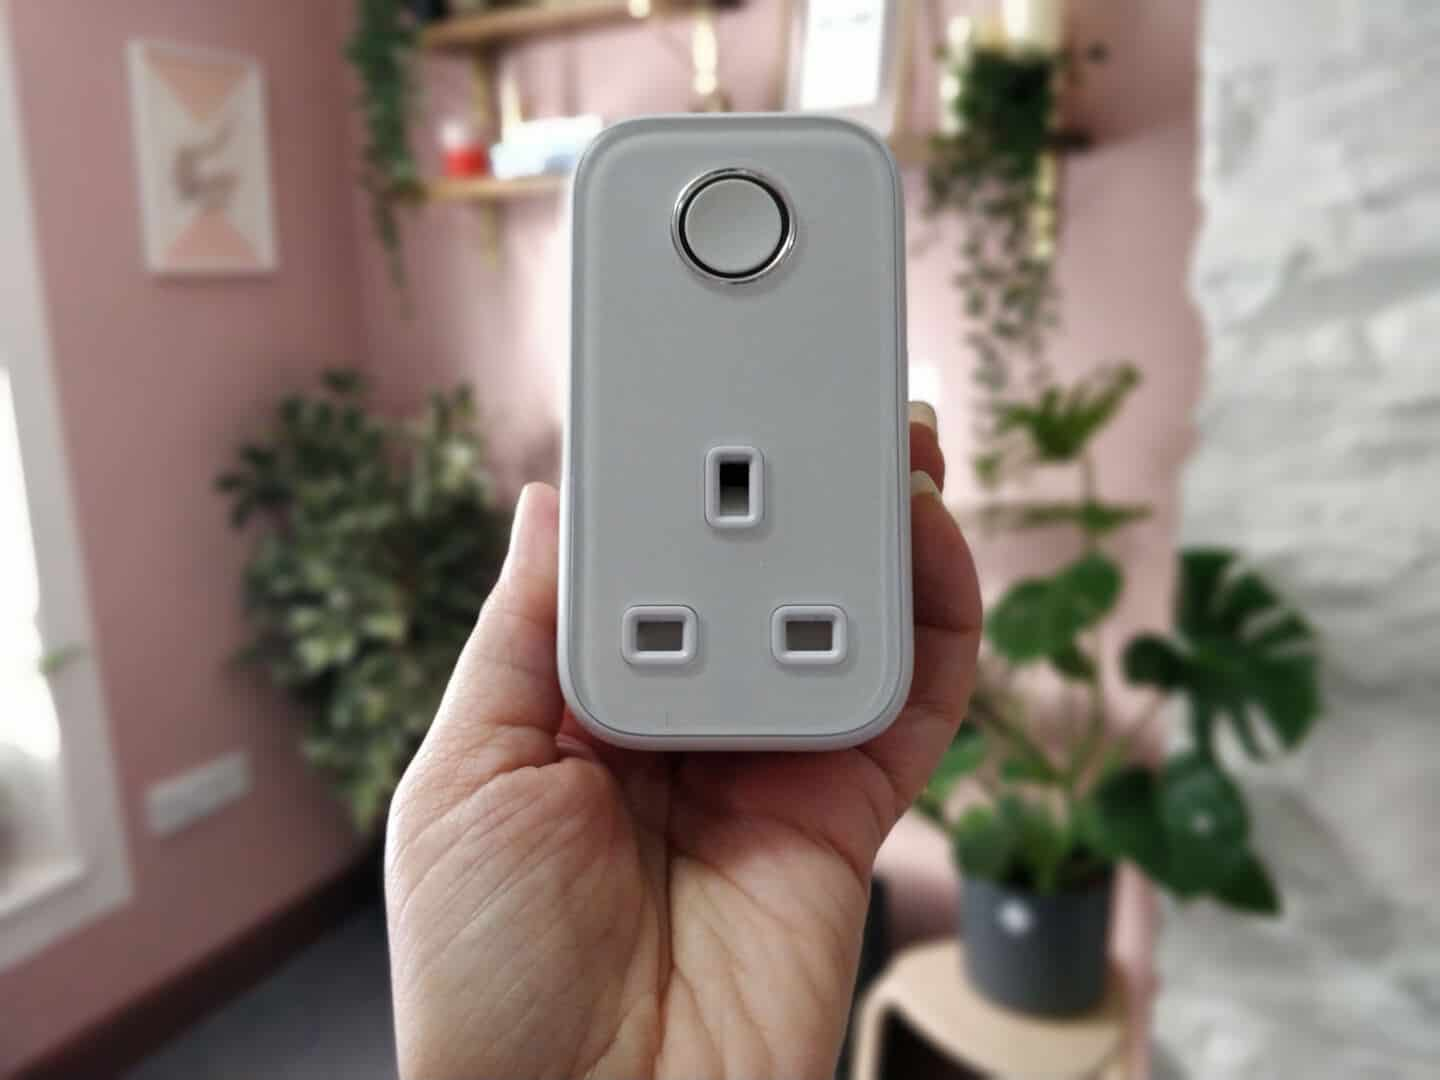 Hive active plug can be used to create a smart office or a smart home